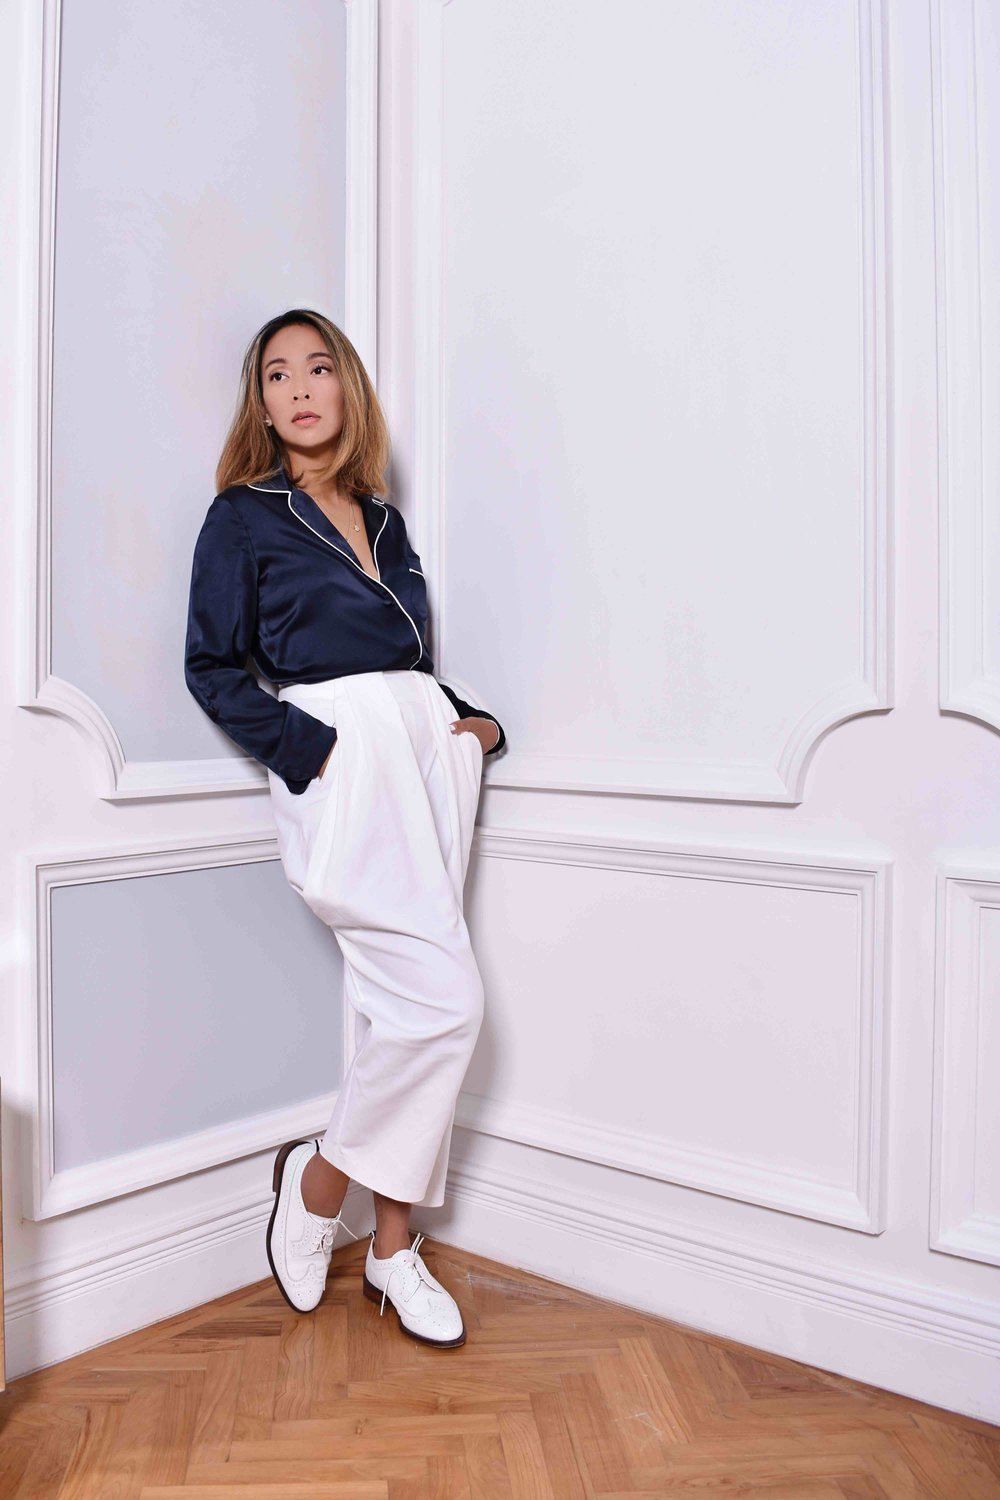 Charmaine wears the EMMA Silk Jacket in Midnight Blue and her own trousers and shoes